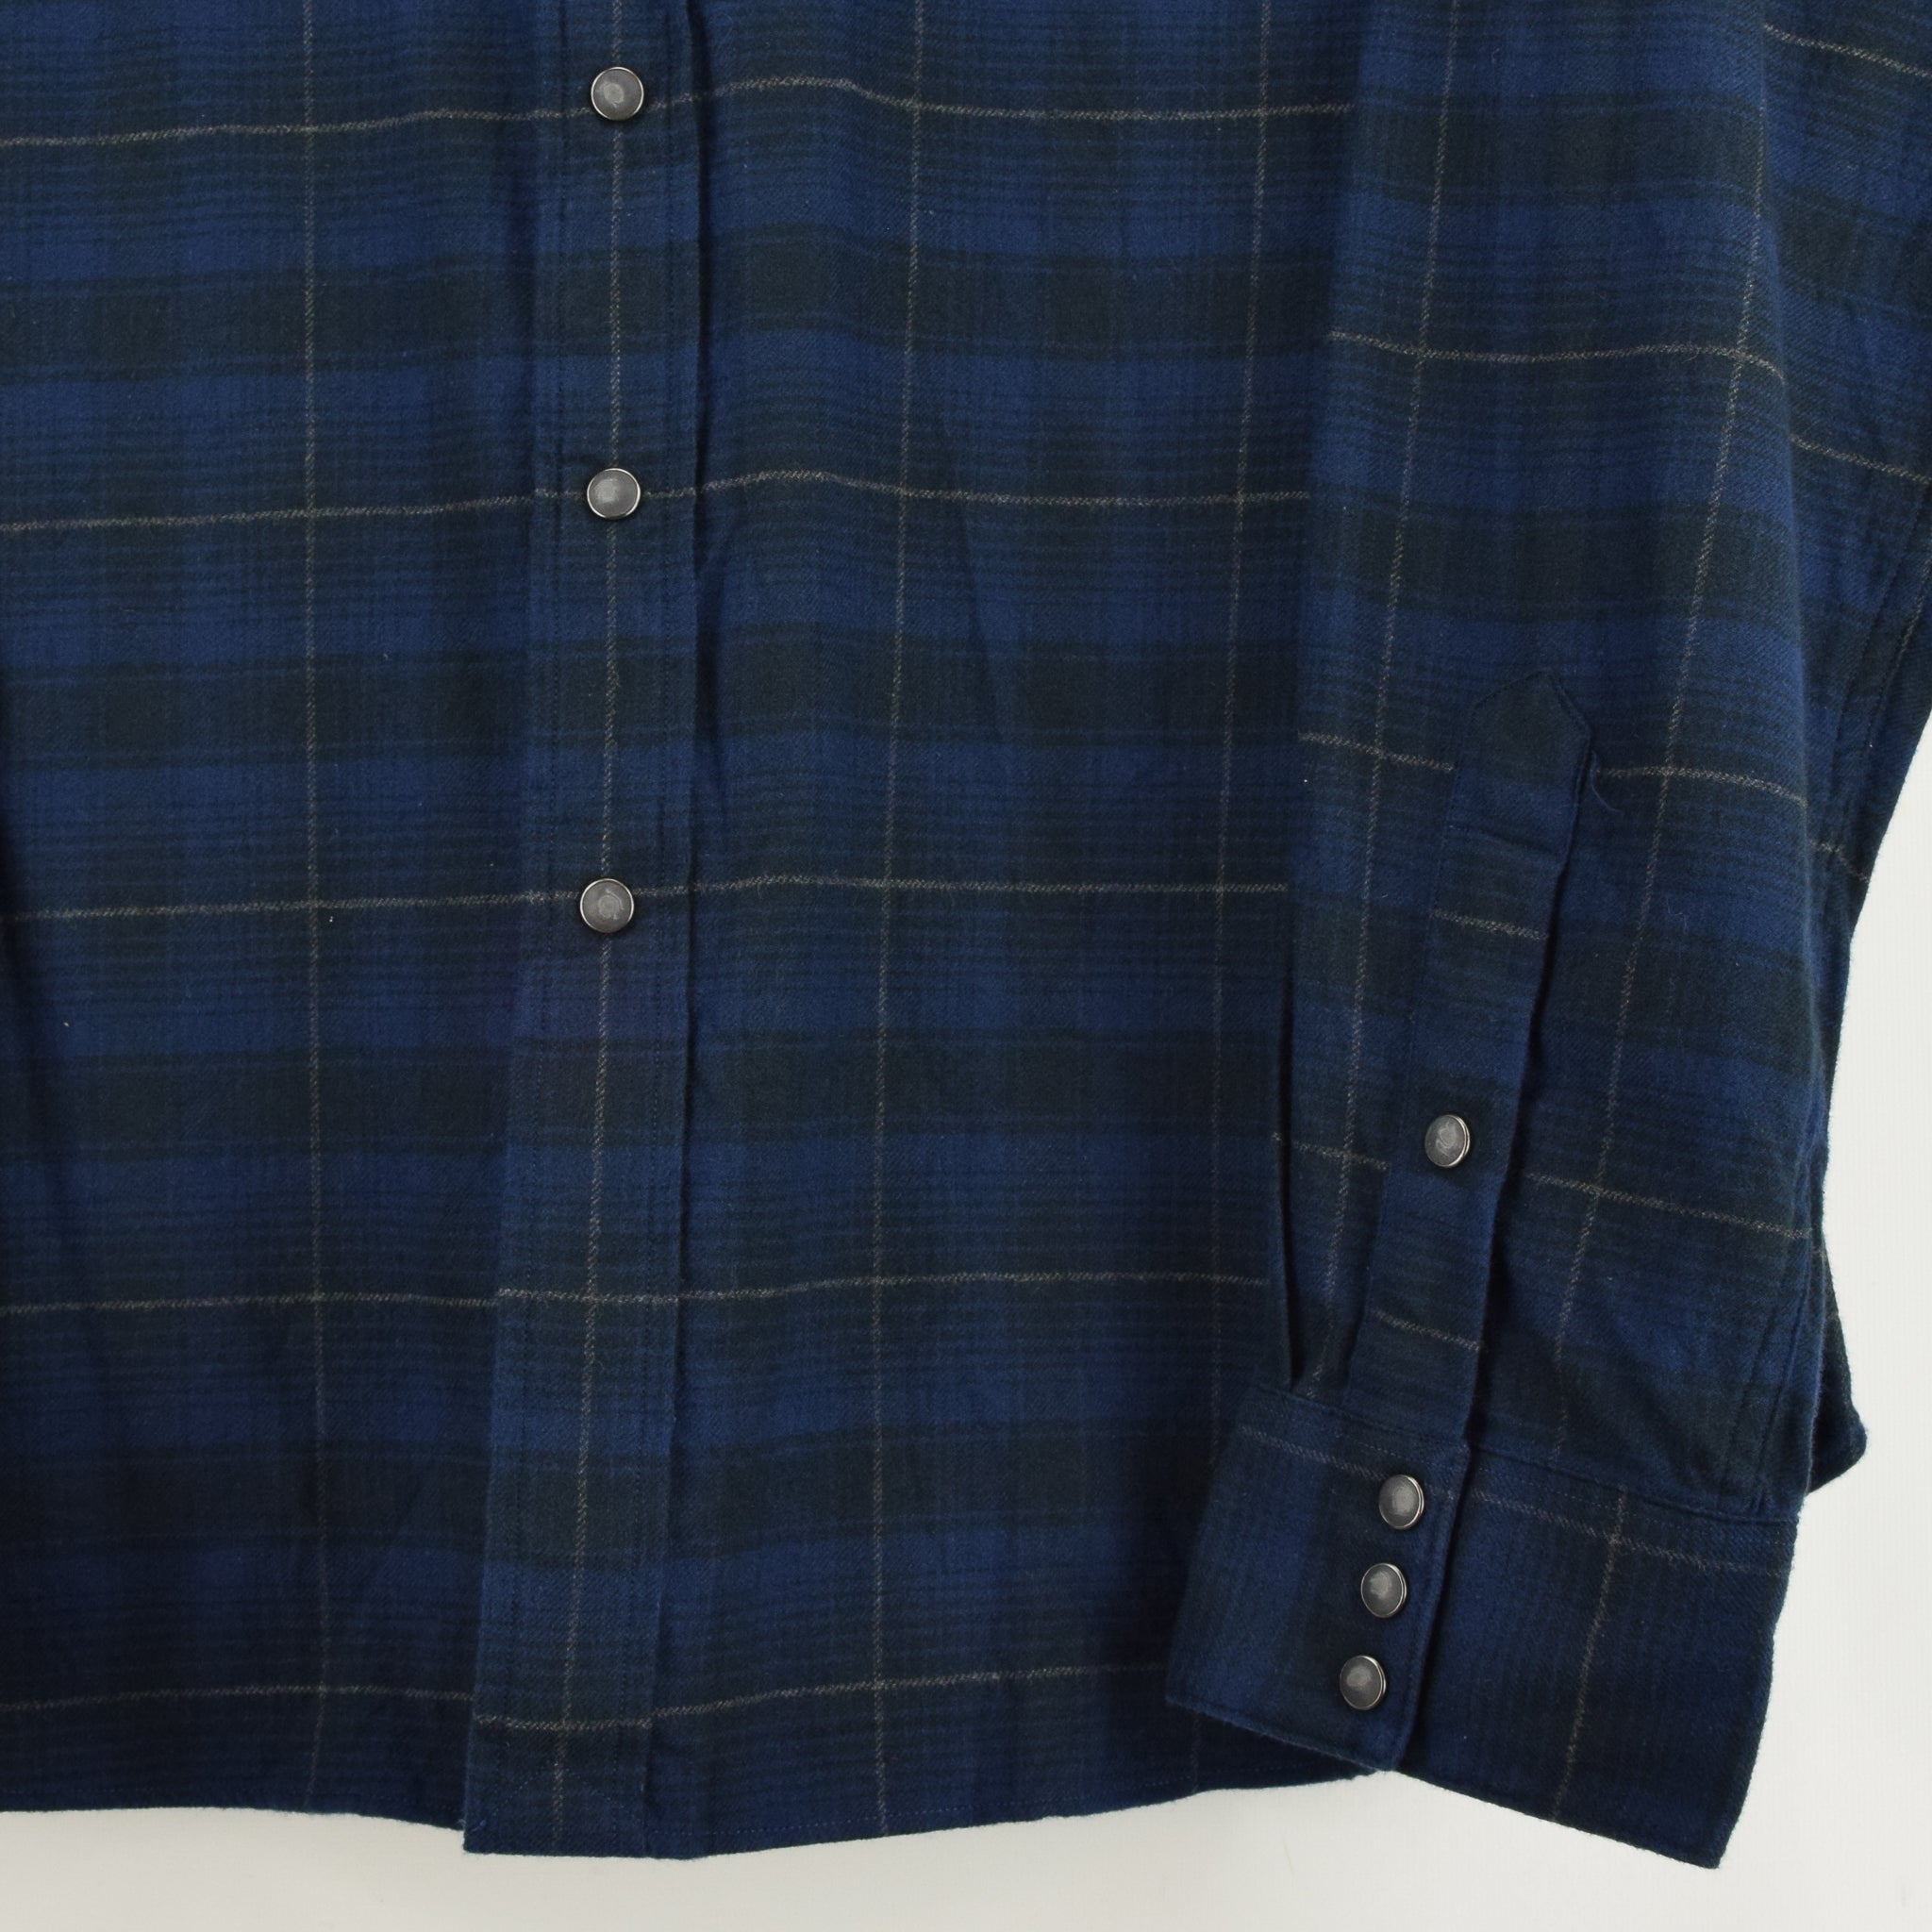 Ralph Lauren Polo Blue Check Cotton Western Style Shirt Long Sleeve XXL front hem